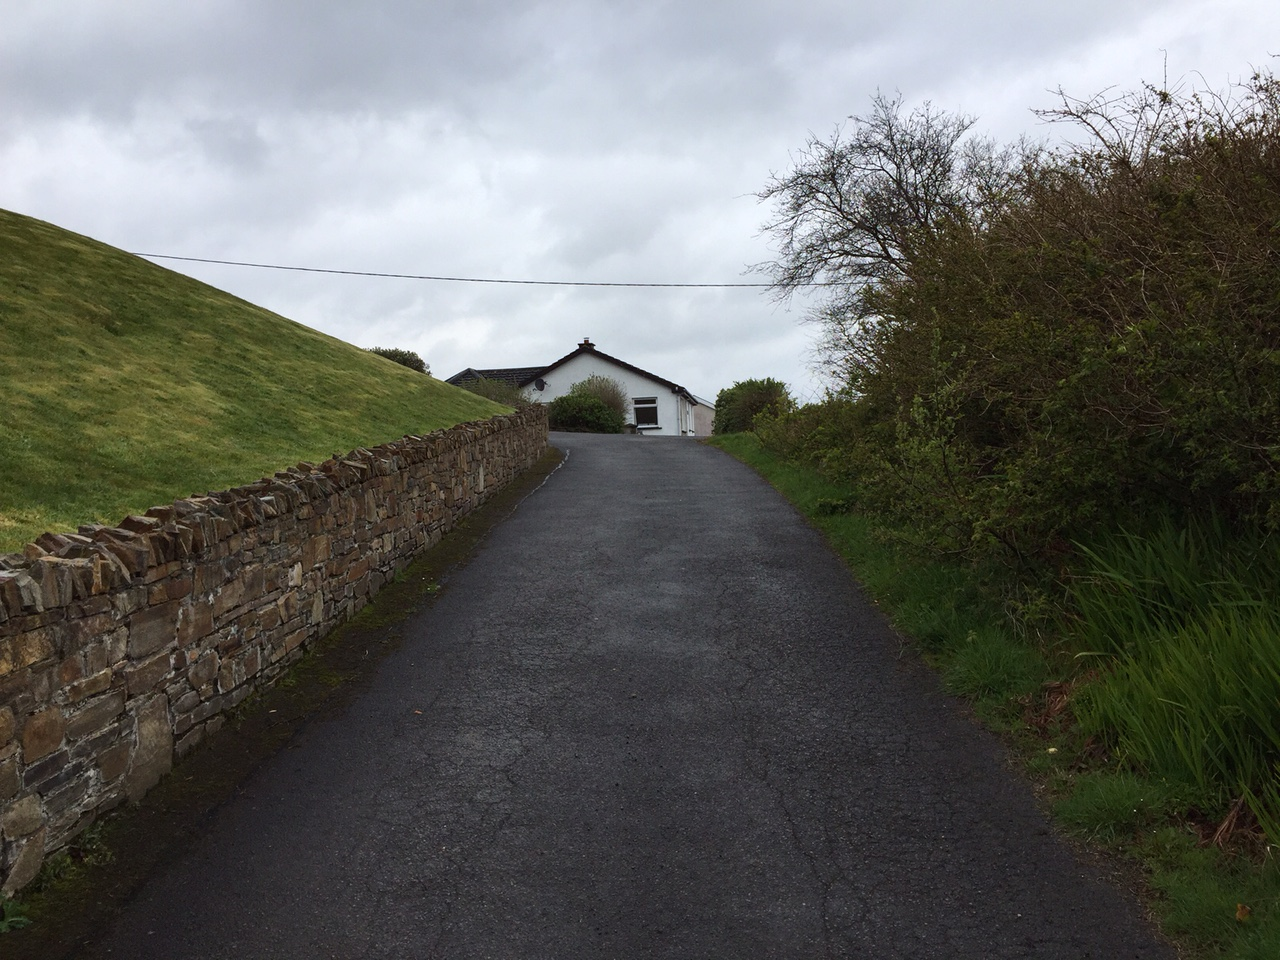 5. As you go up this road/lane, you will see the gable end of Artists View.